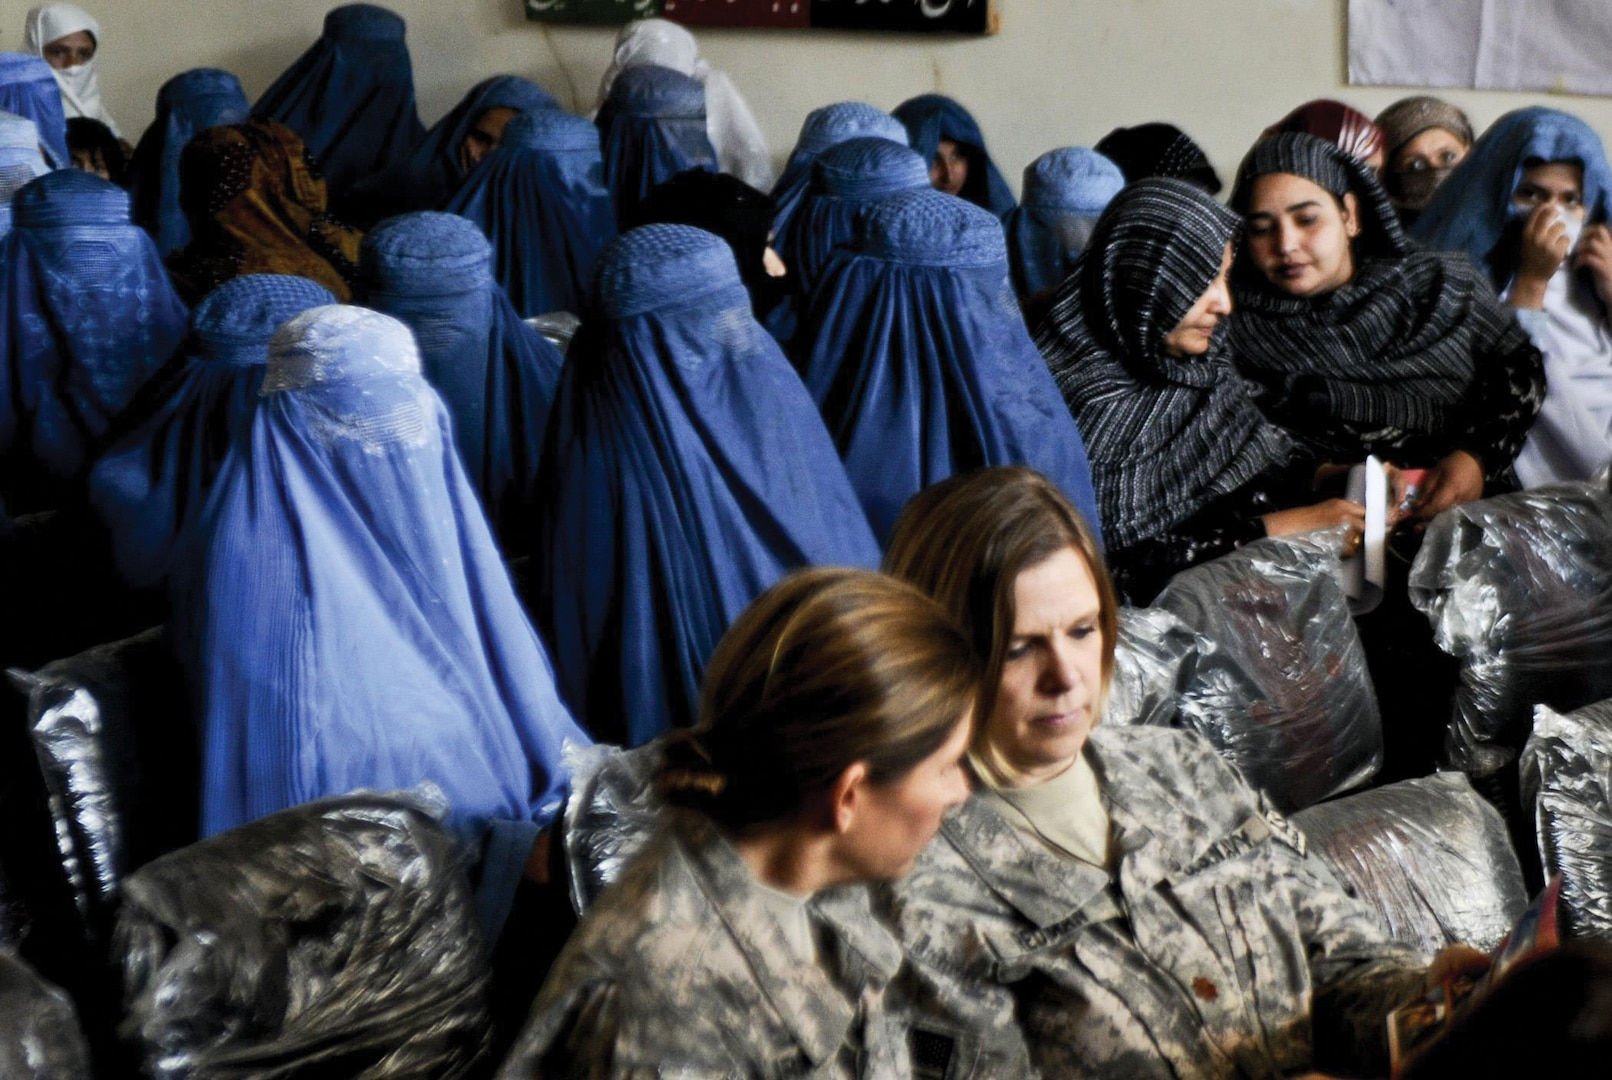 The National Guard State Partnership Program has forged many promising relationships with